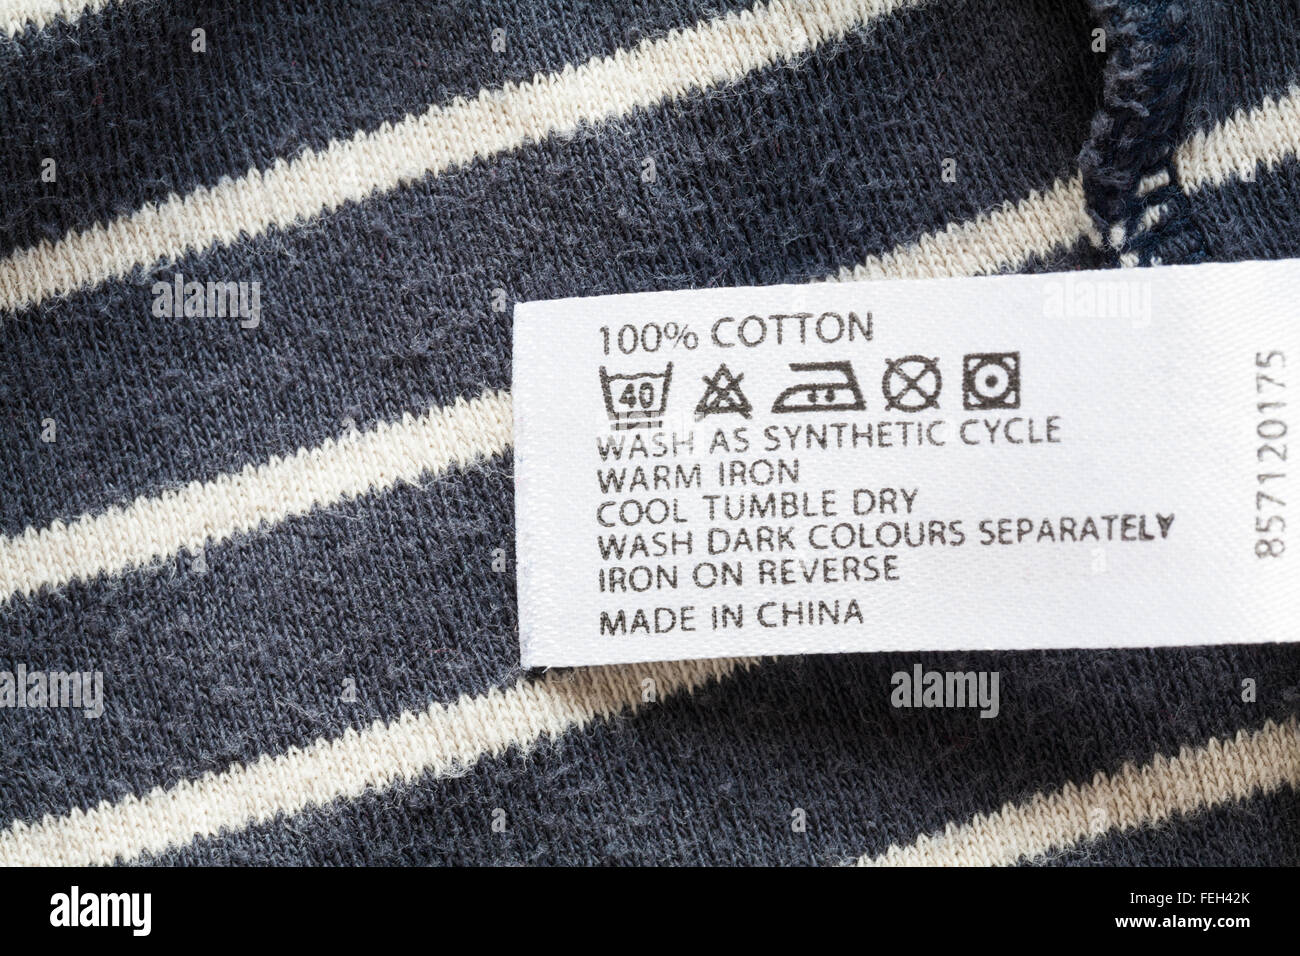 Label in 100 cotton garment made in china with care instructions label in 100 cotton garment made in china with care instructions sold in the uk united kingdom great britain biocorpaavc Choice Image